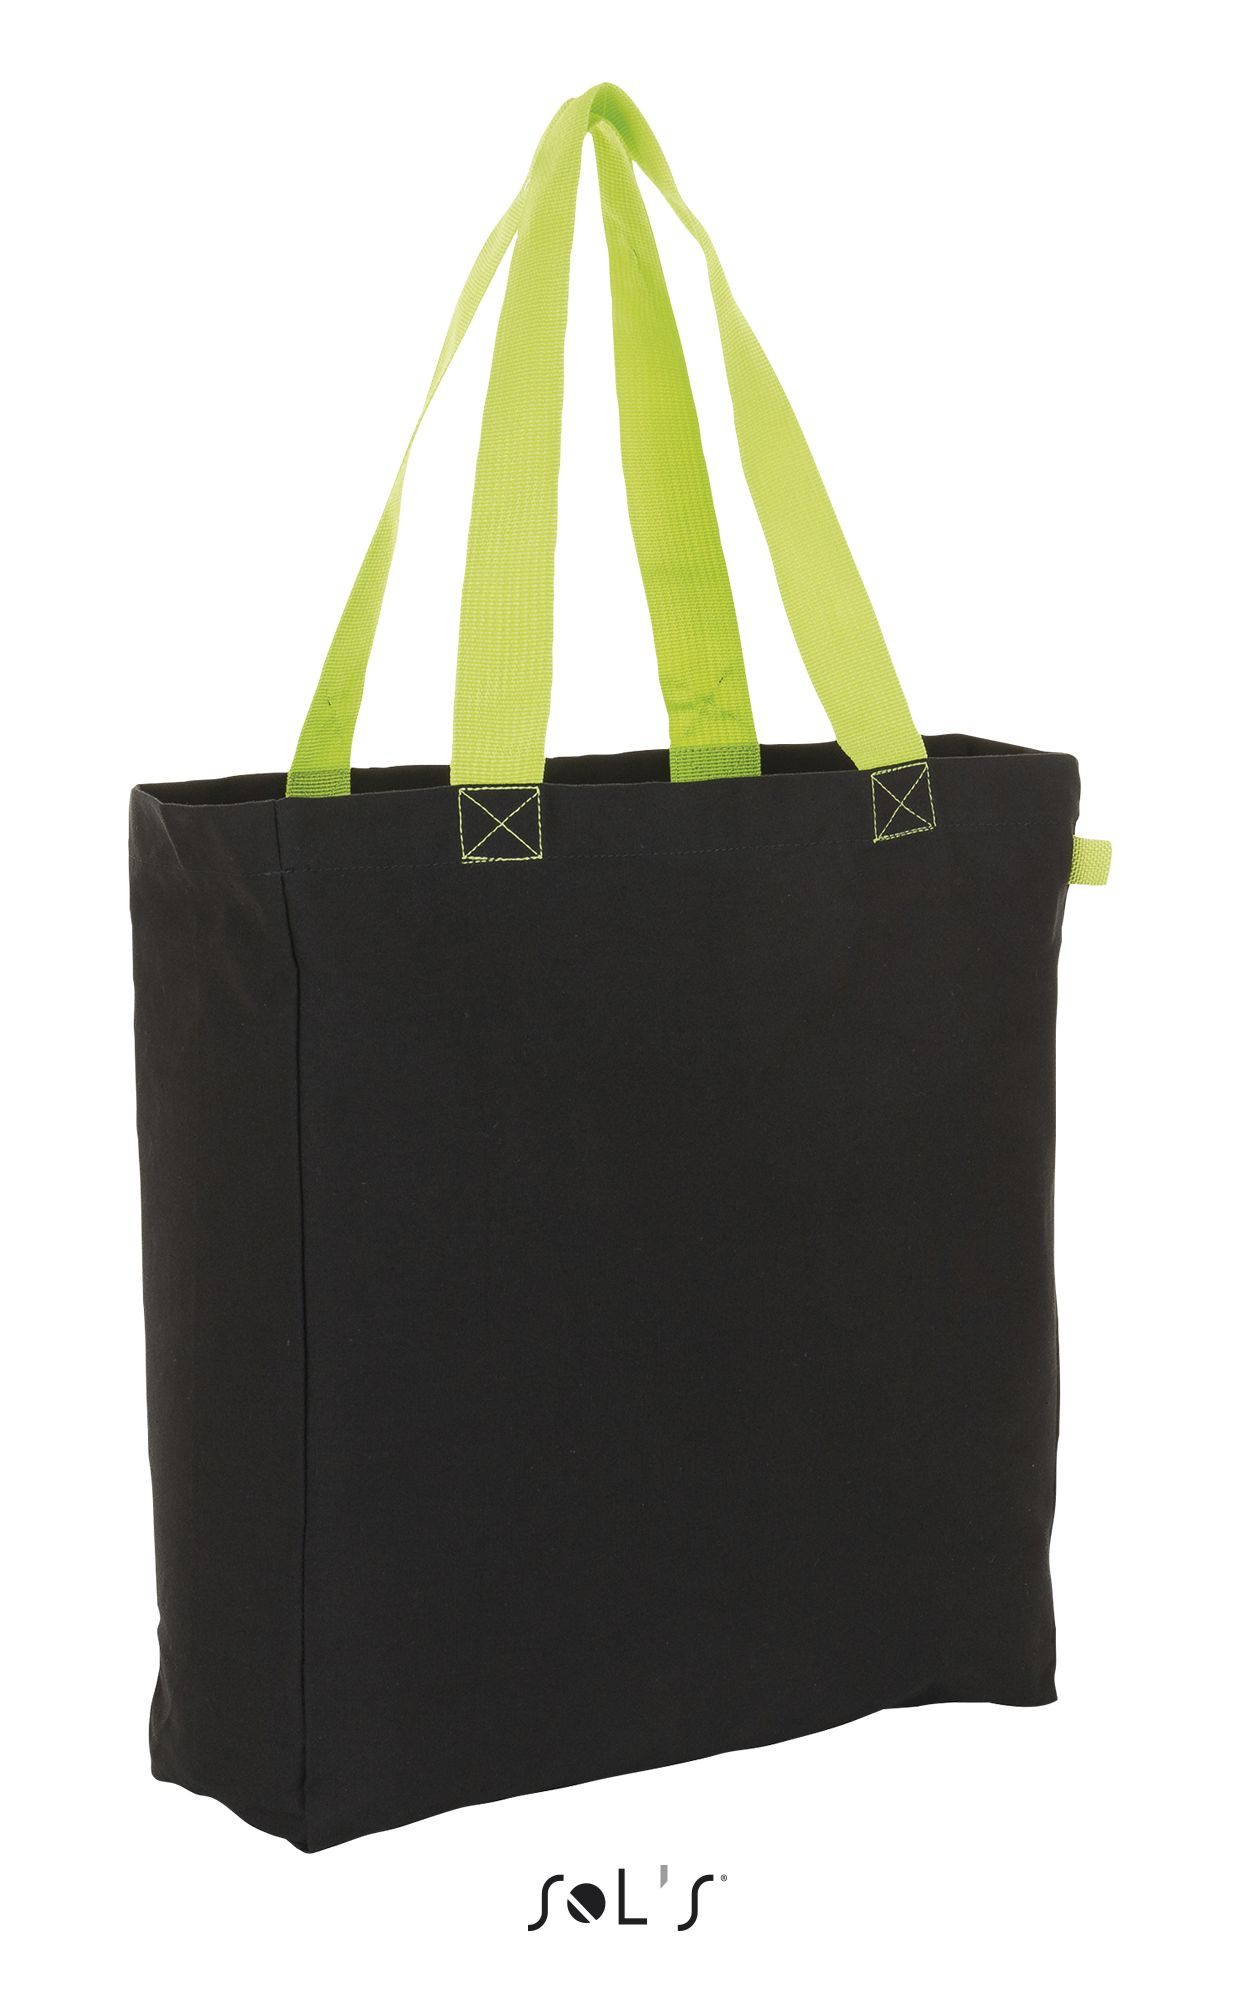 886 - Black / Neon lime